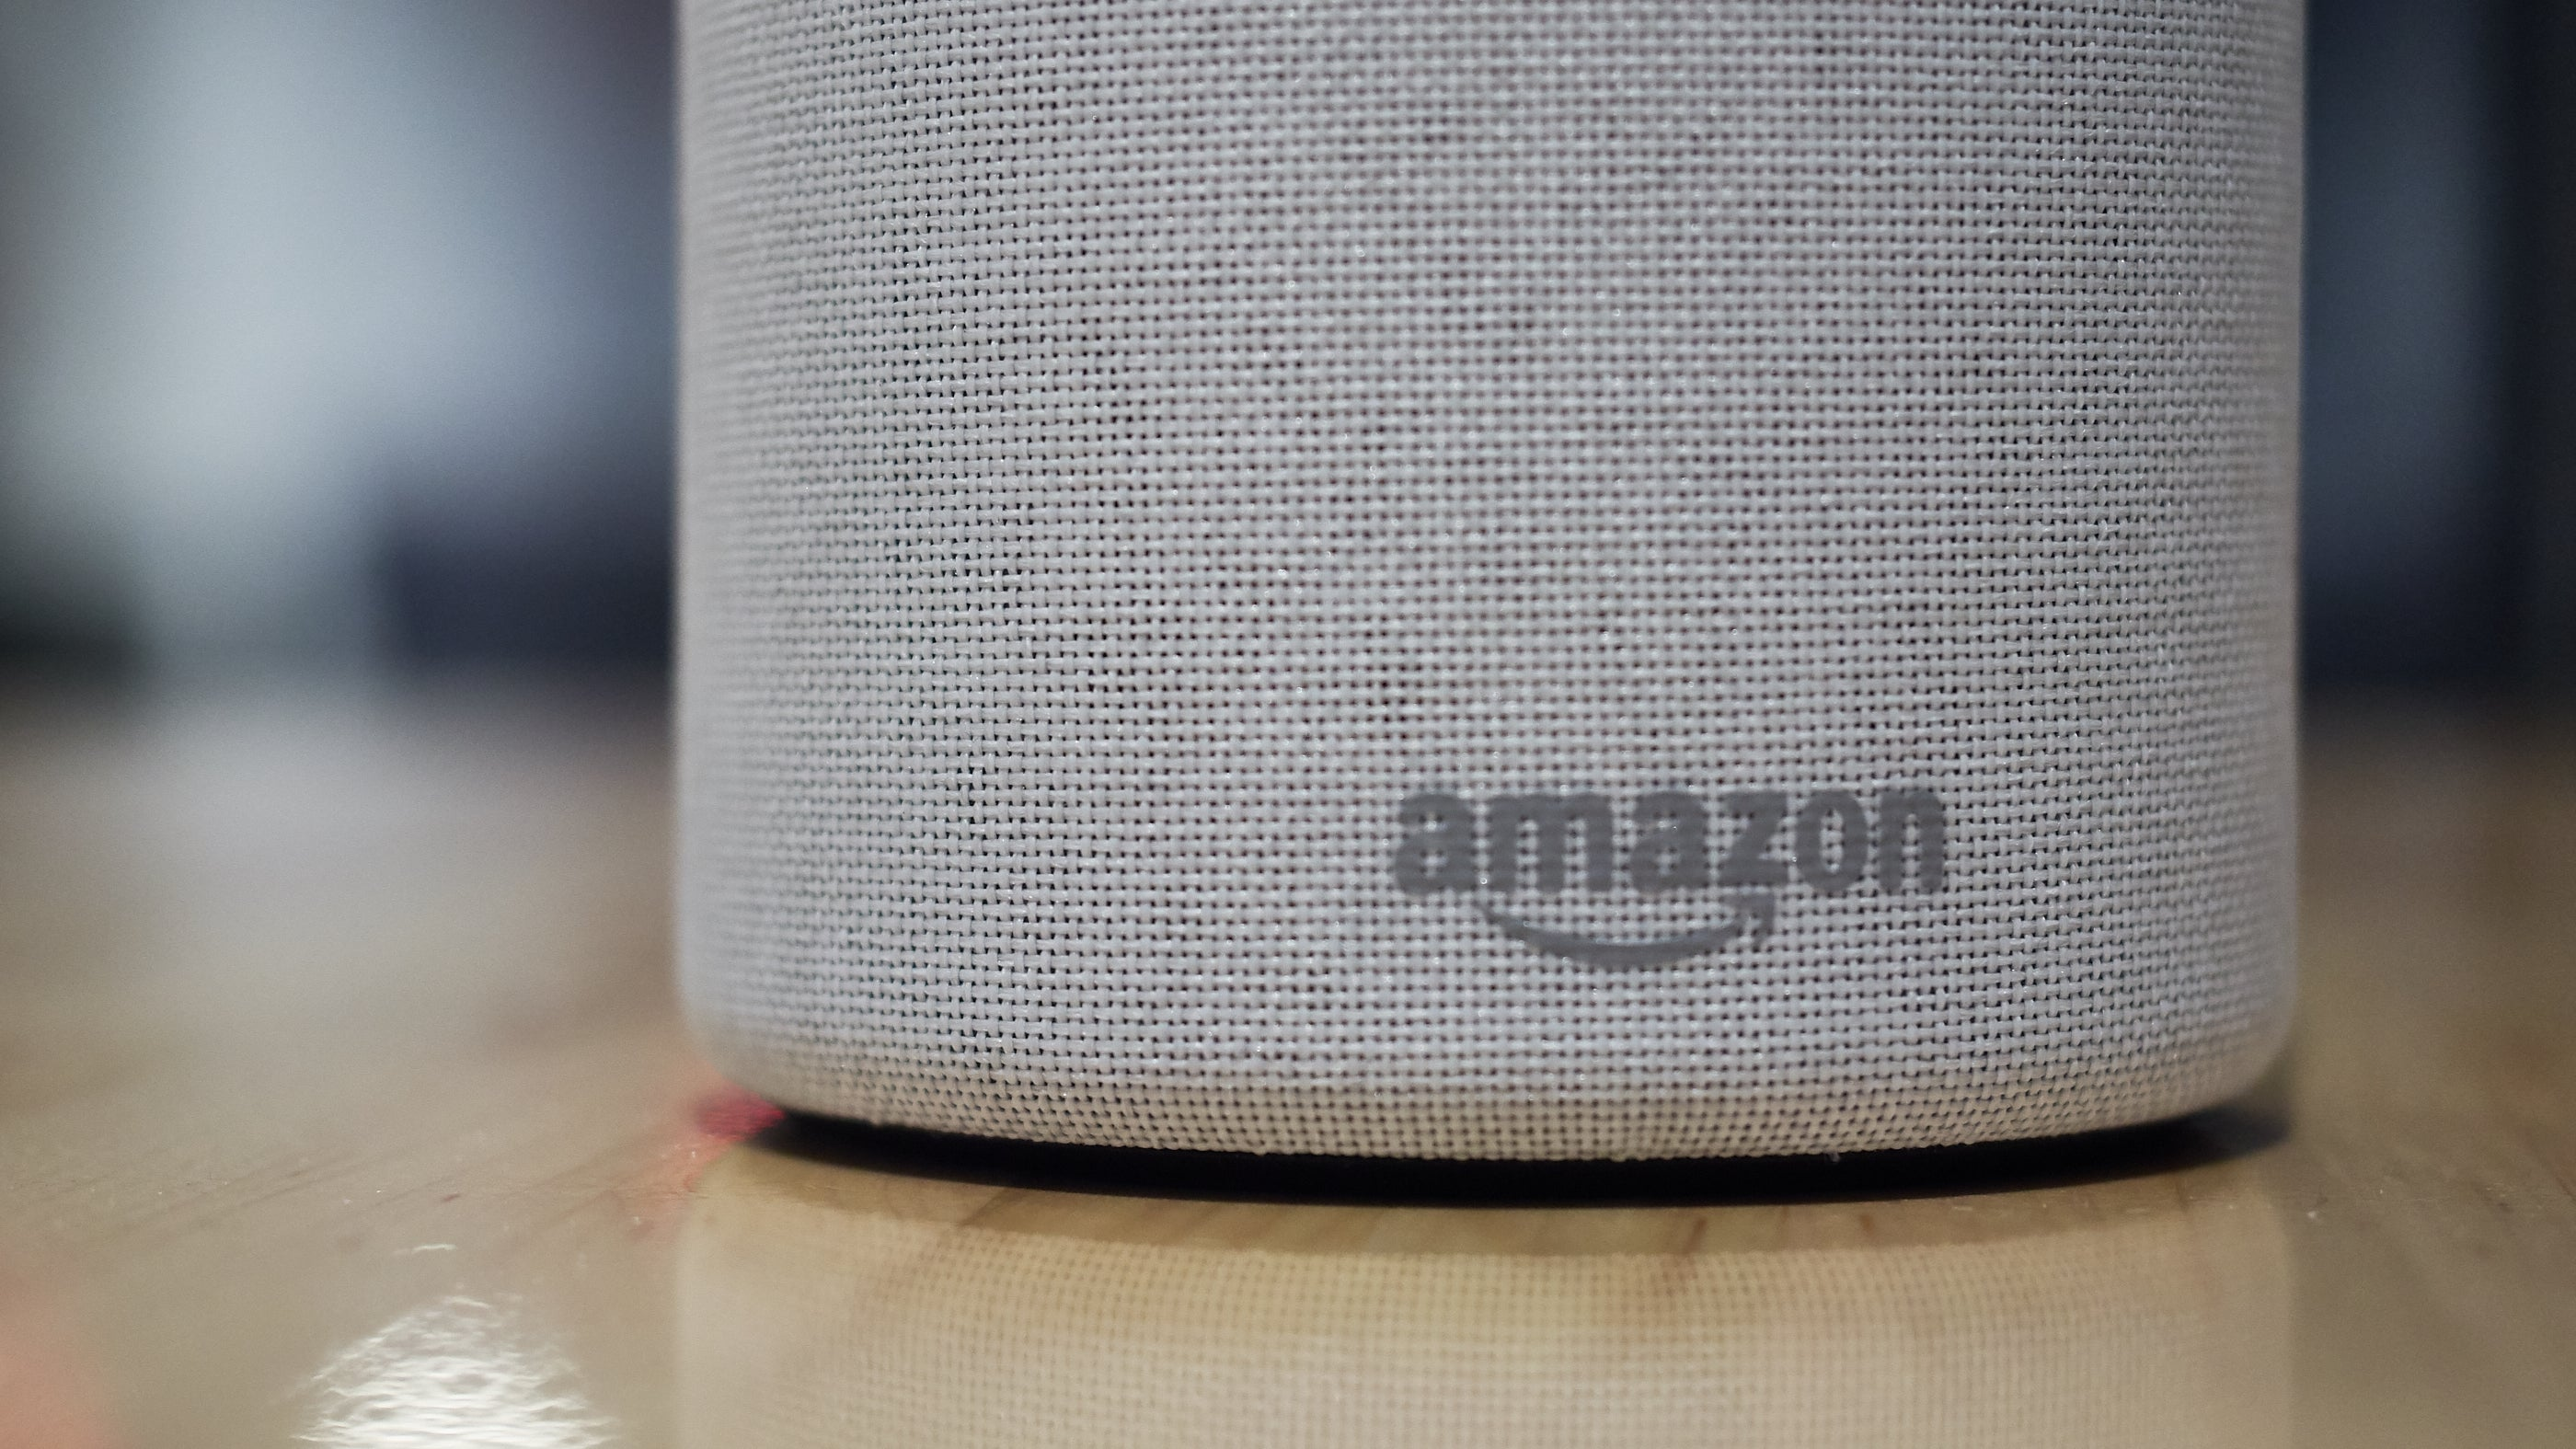 Alexa's Sneaky Fine Print Could Prevent Millions From Suing Amazon For Anything